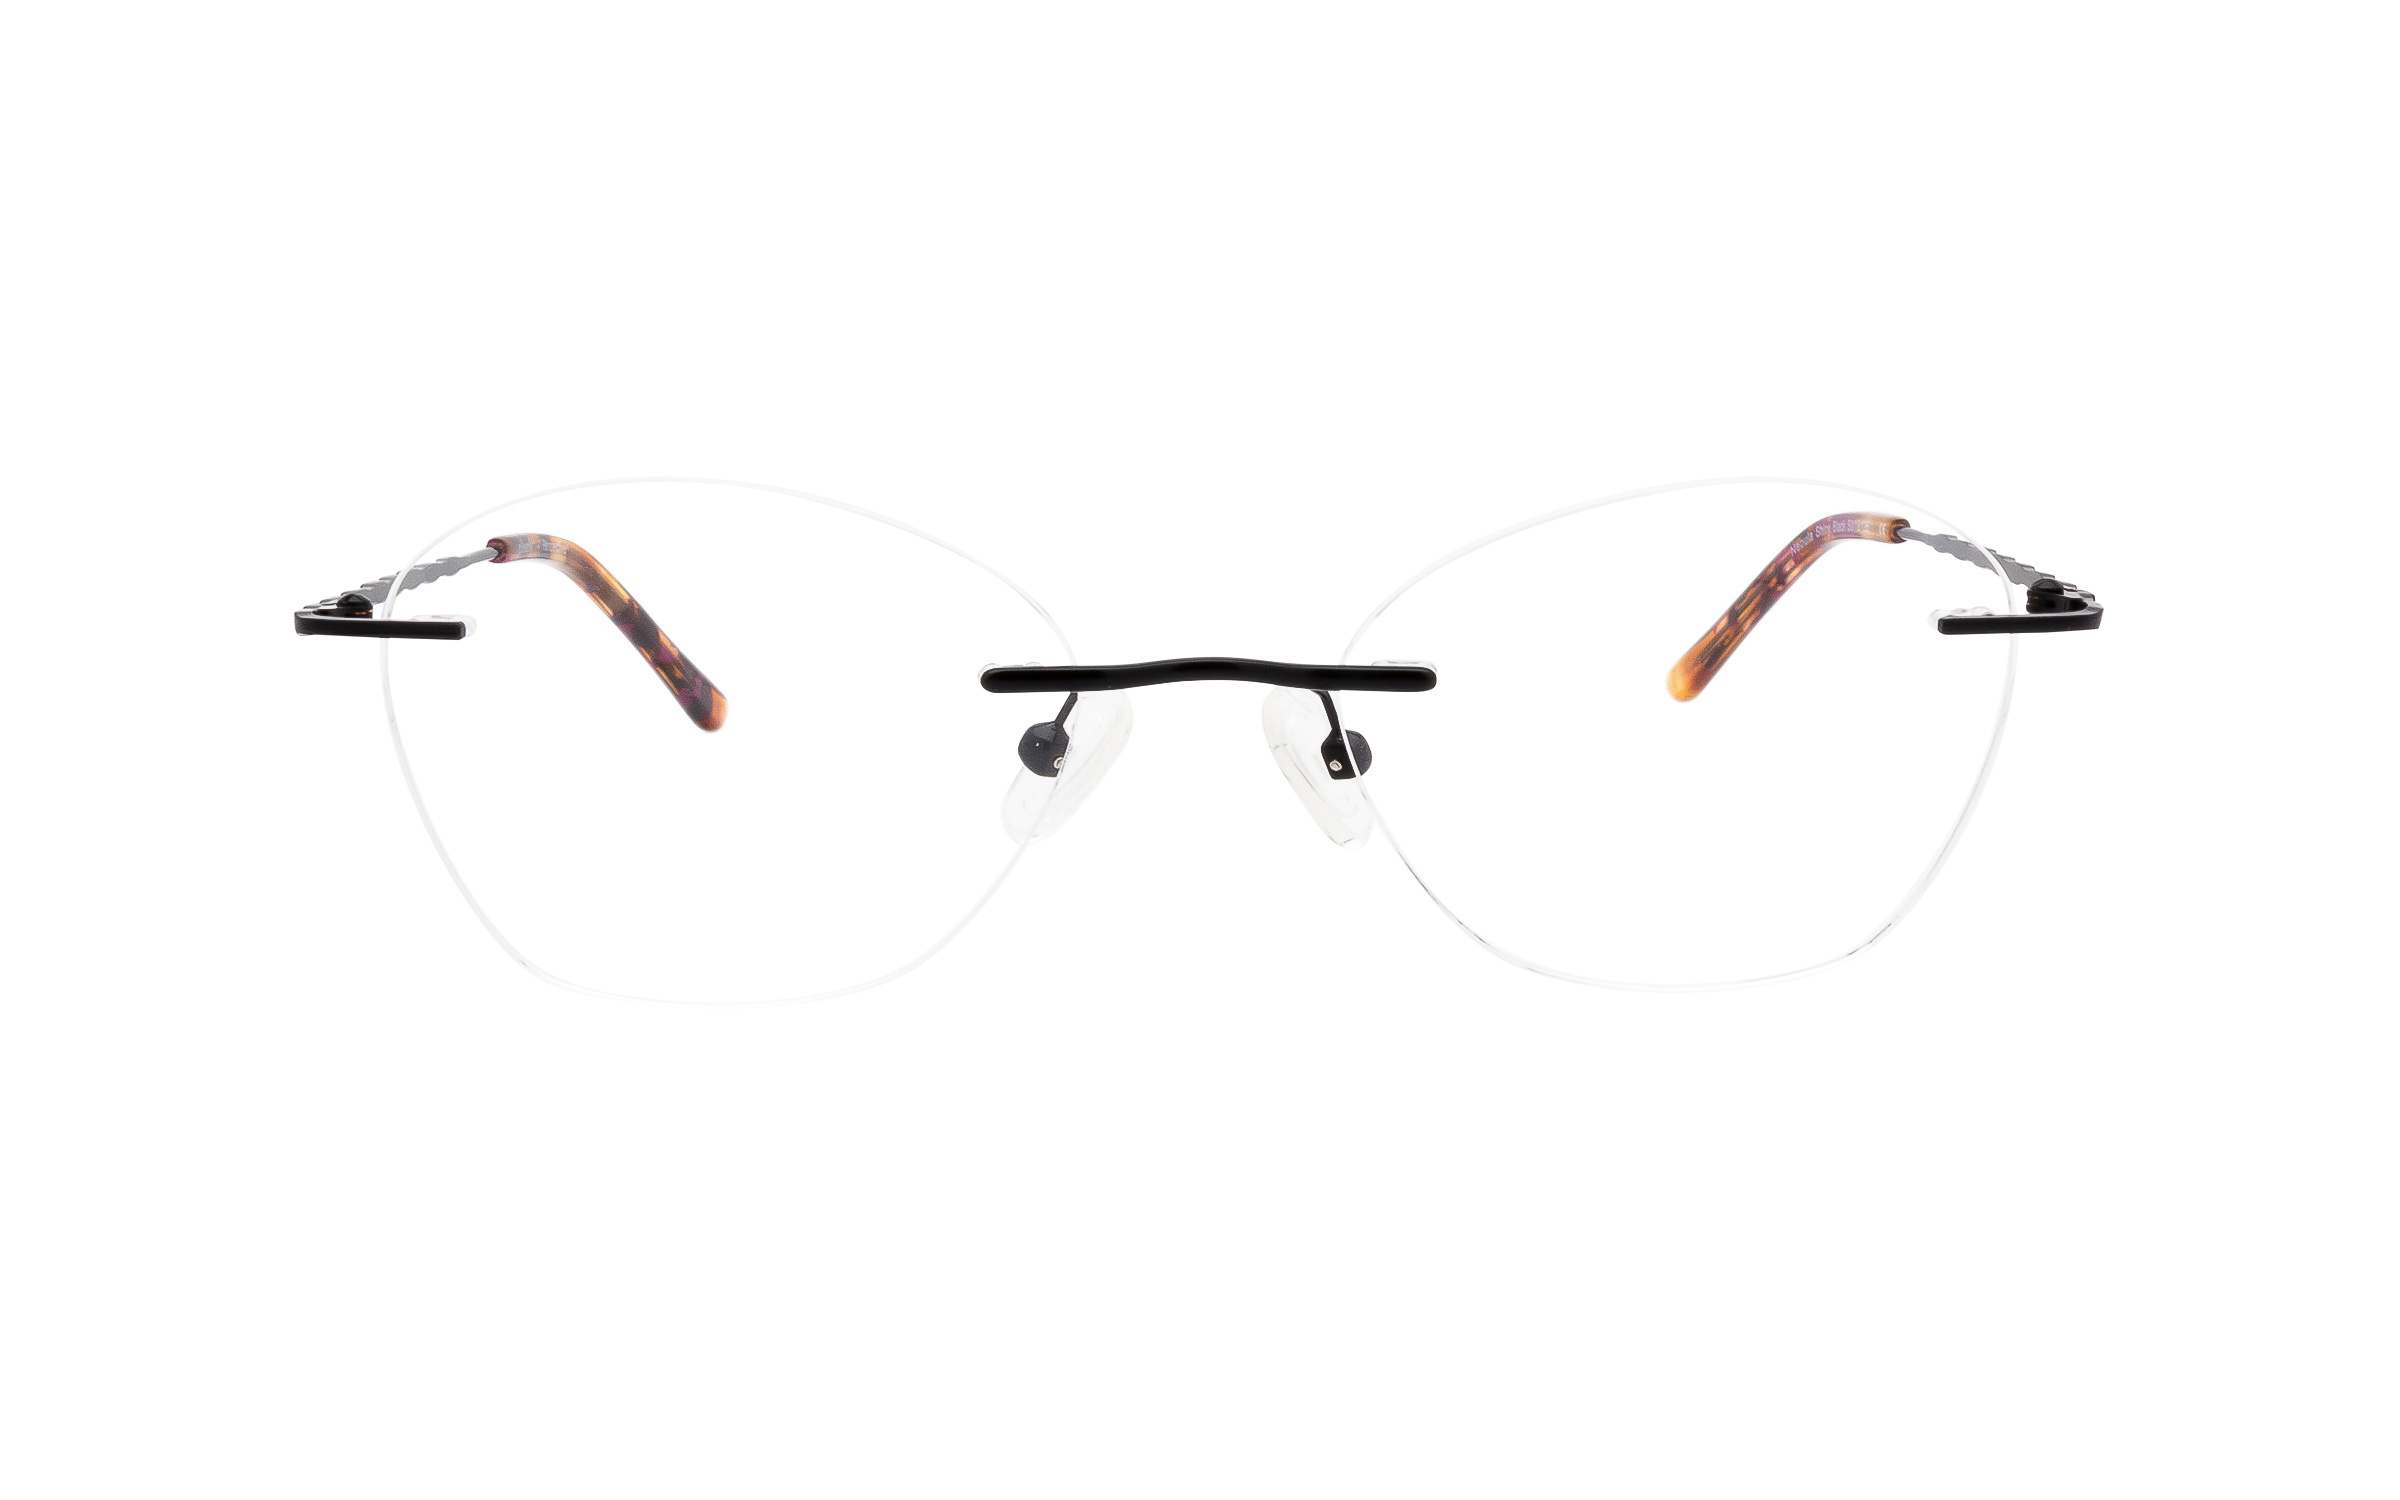 http://www.coastal.com/ - Perspective Nebula PER018 C02 (50) Eyeglasses and Frame in Shiny Black | Acetate/Metal – Online Coastal